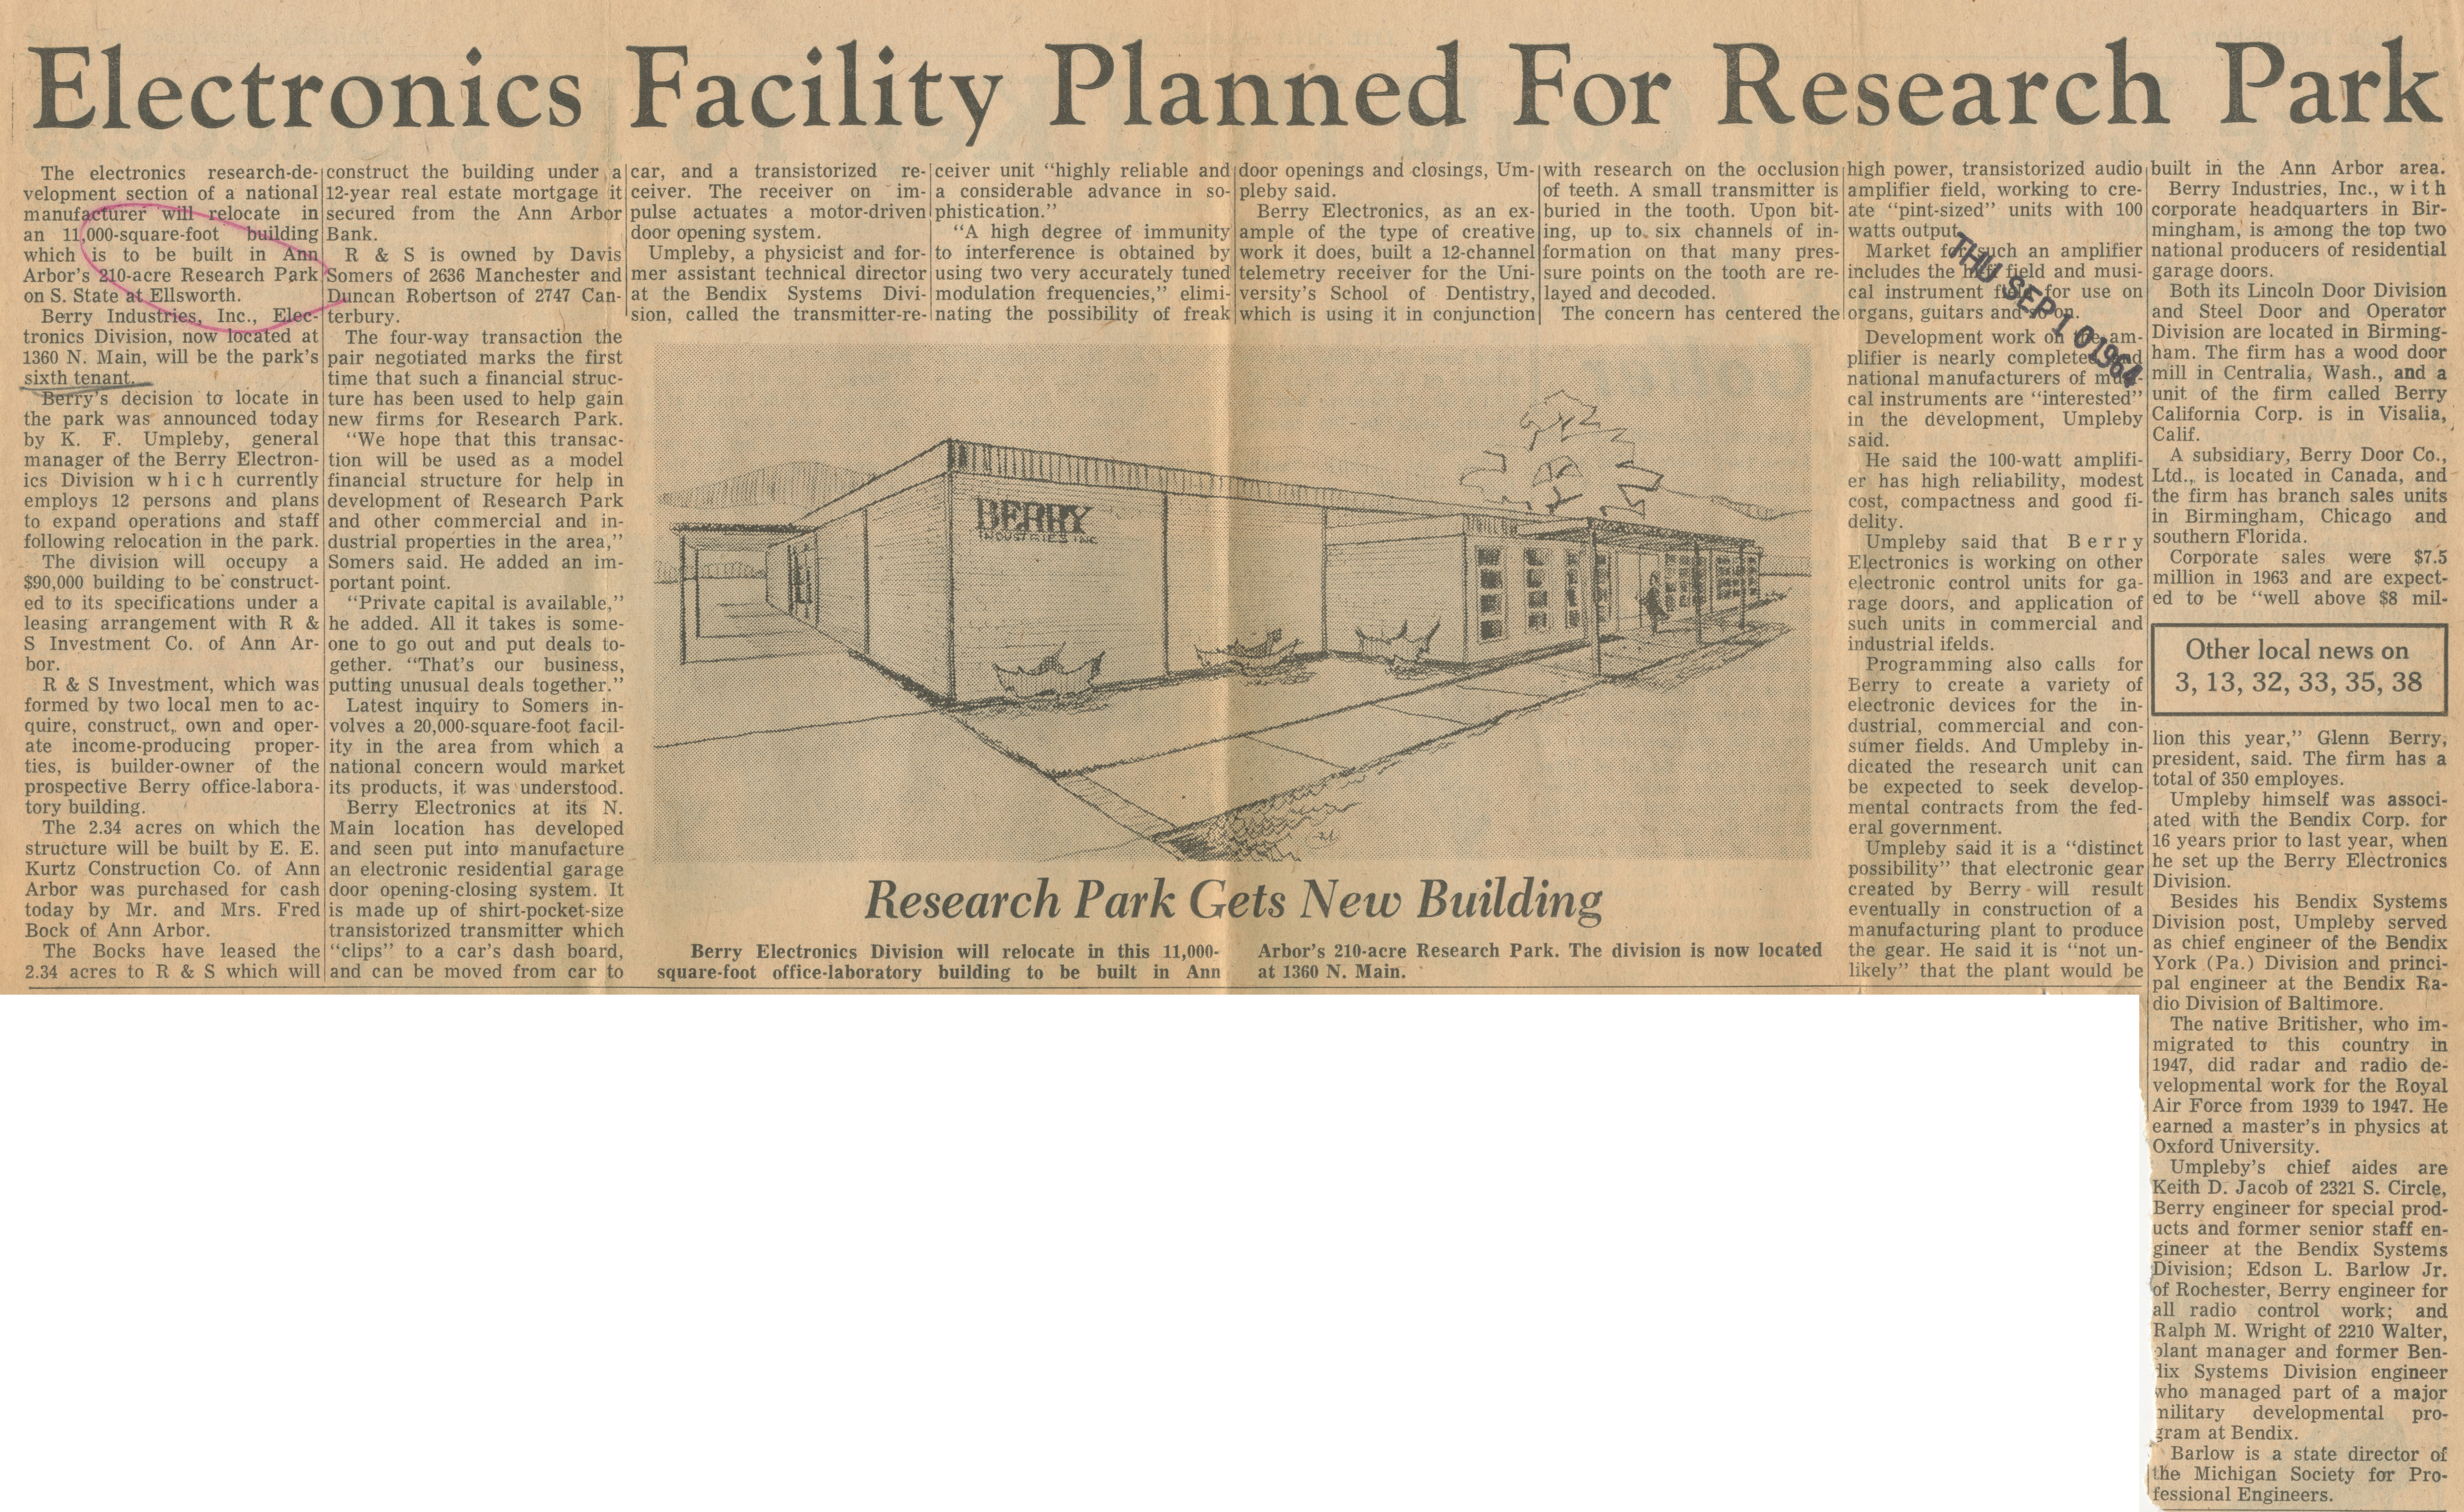 Electronics Facility Planned For Research Park image